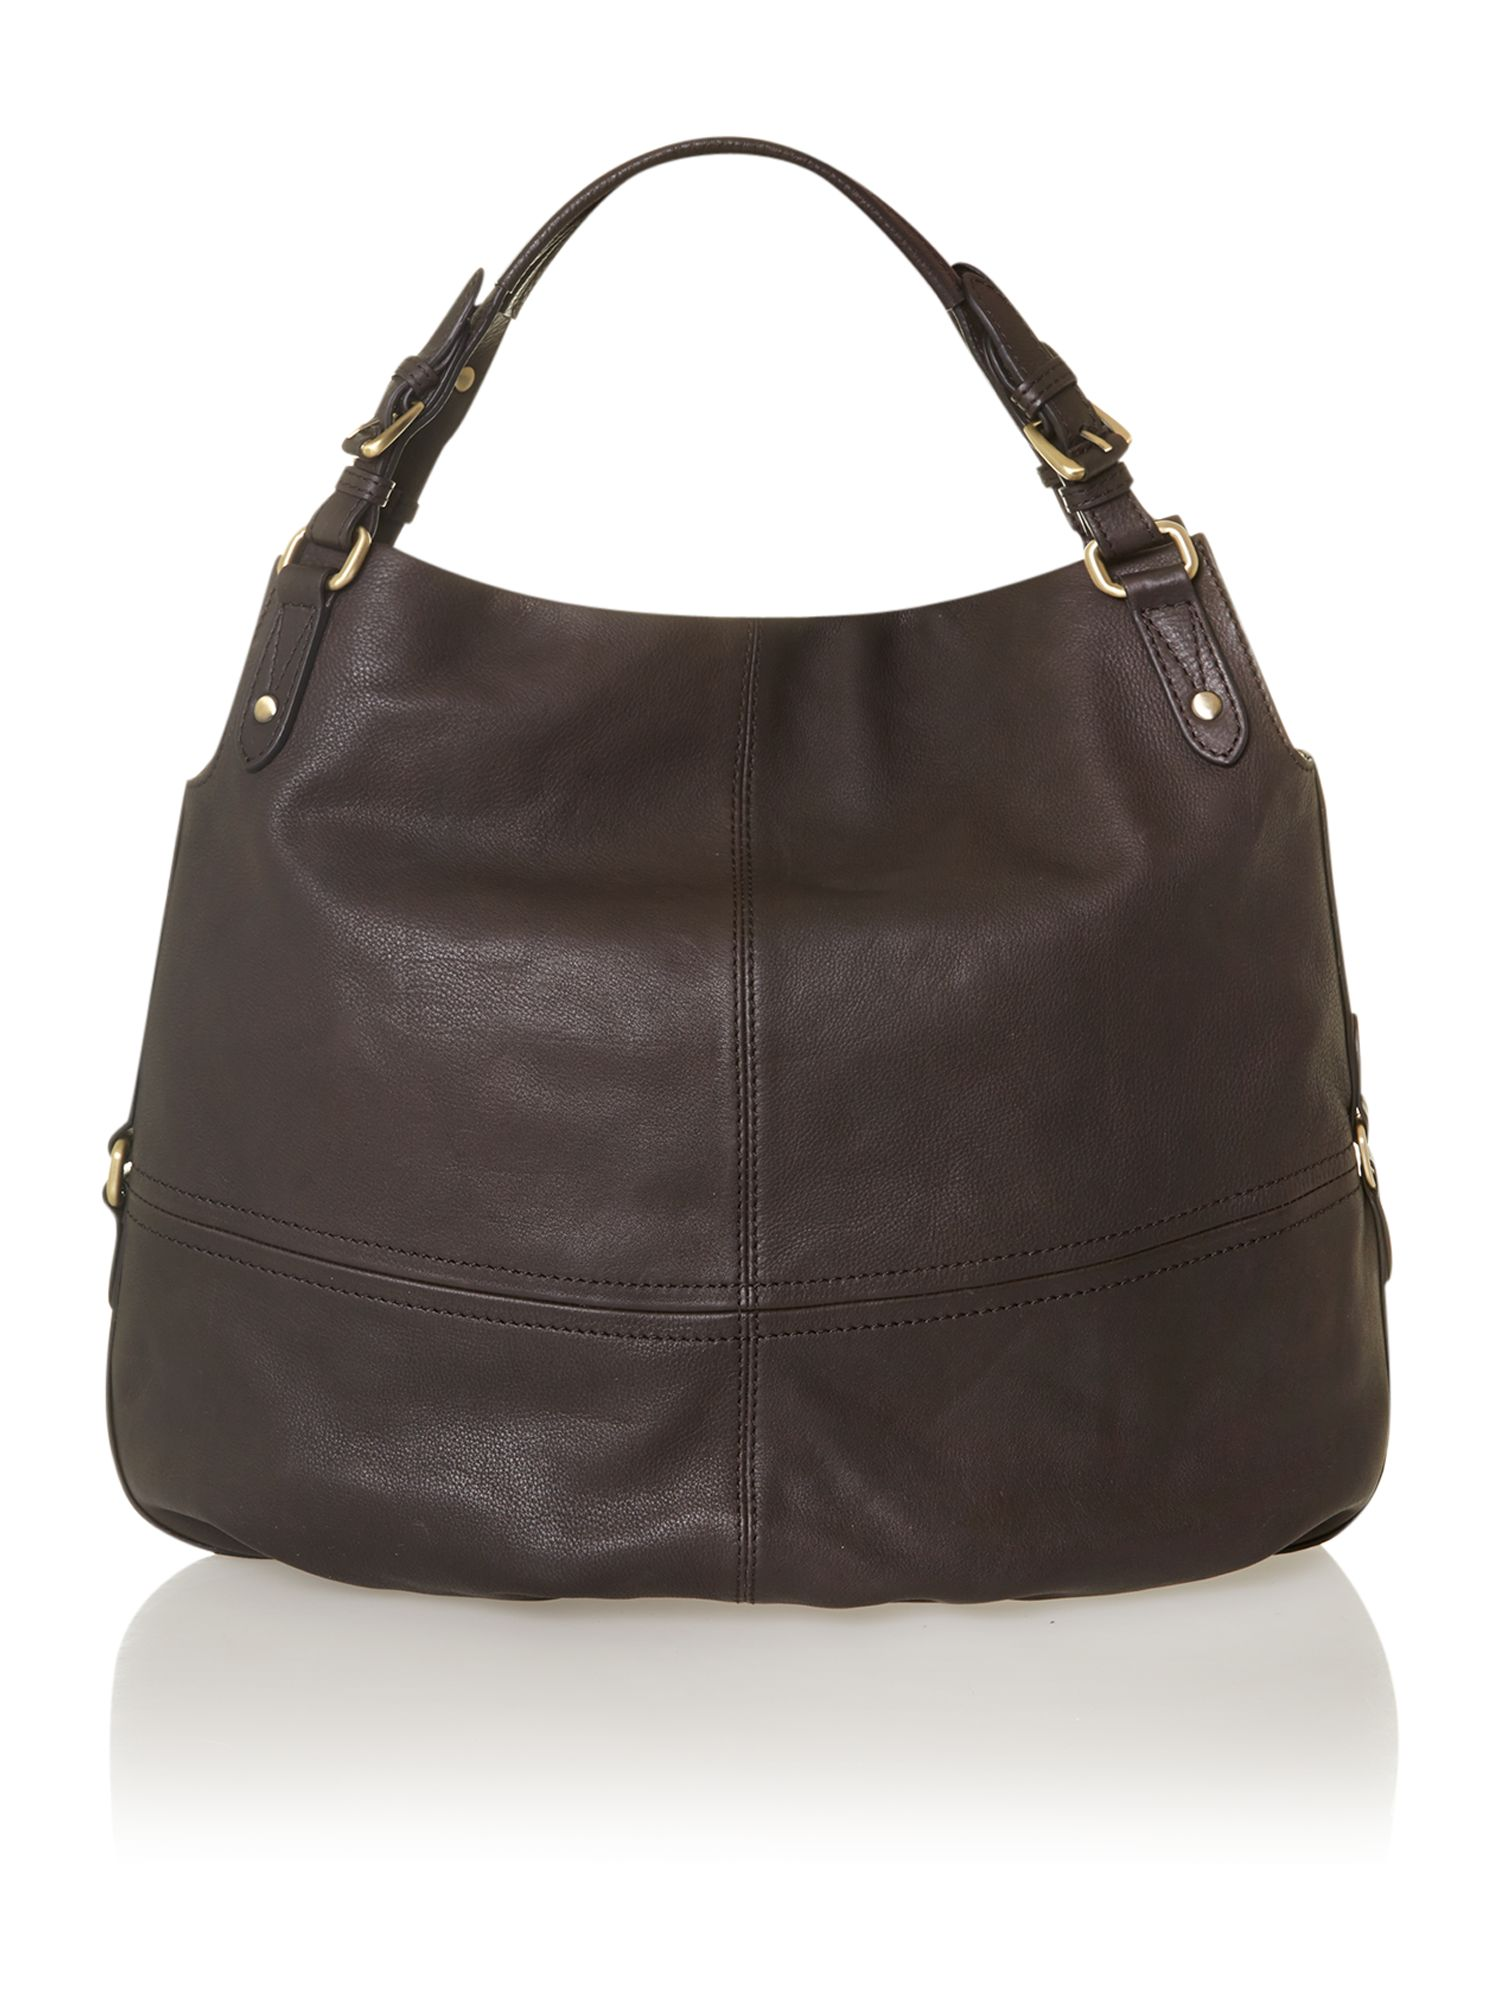 Brown olive hobo bag